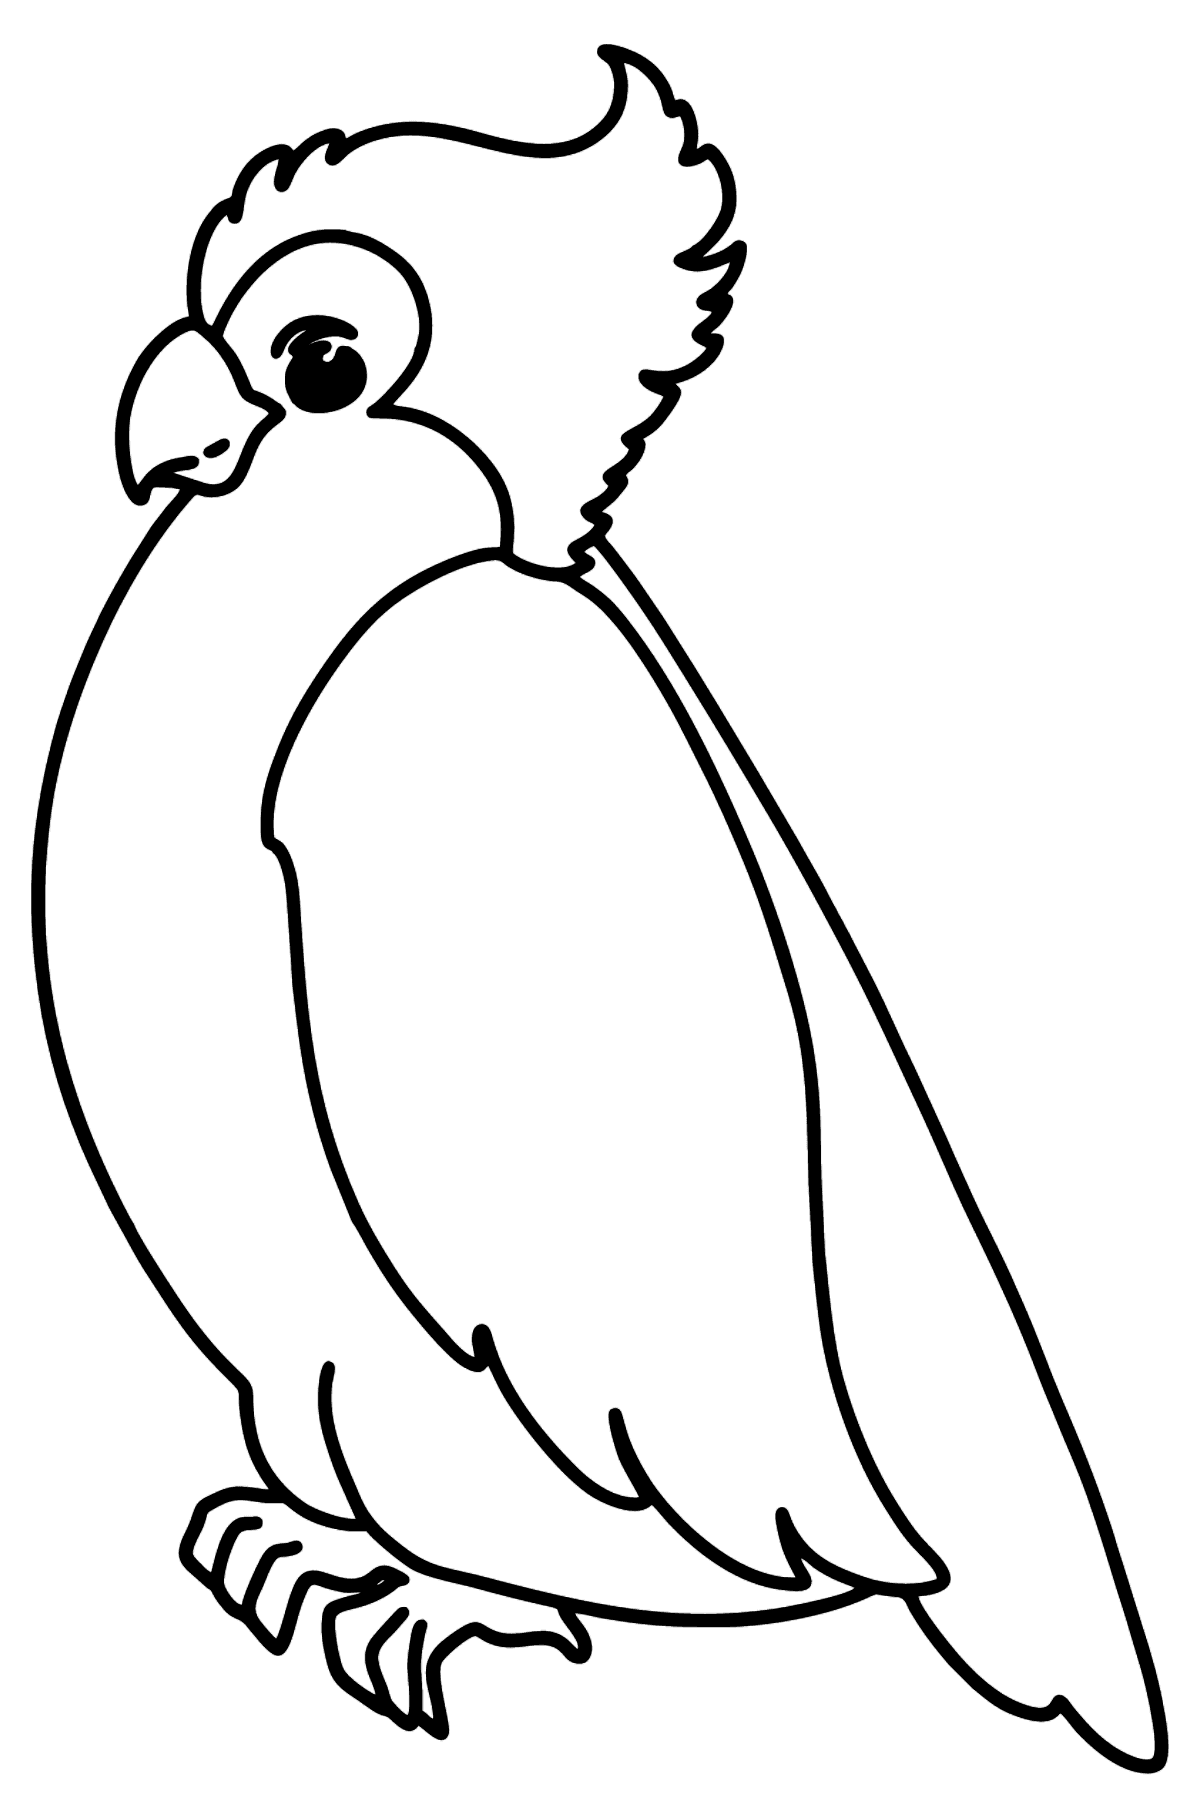 Simple coloring page with a Cockatoo - Coloring Pages for Kids